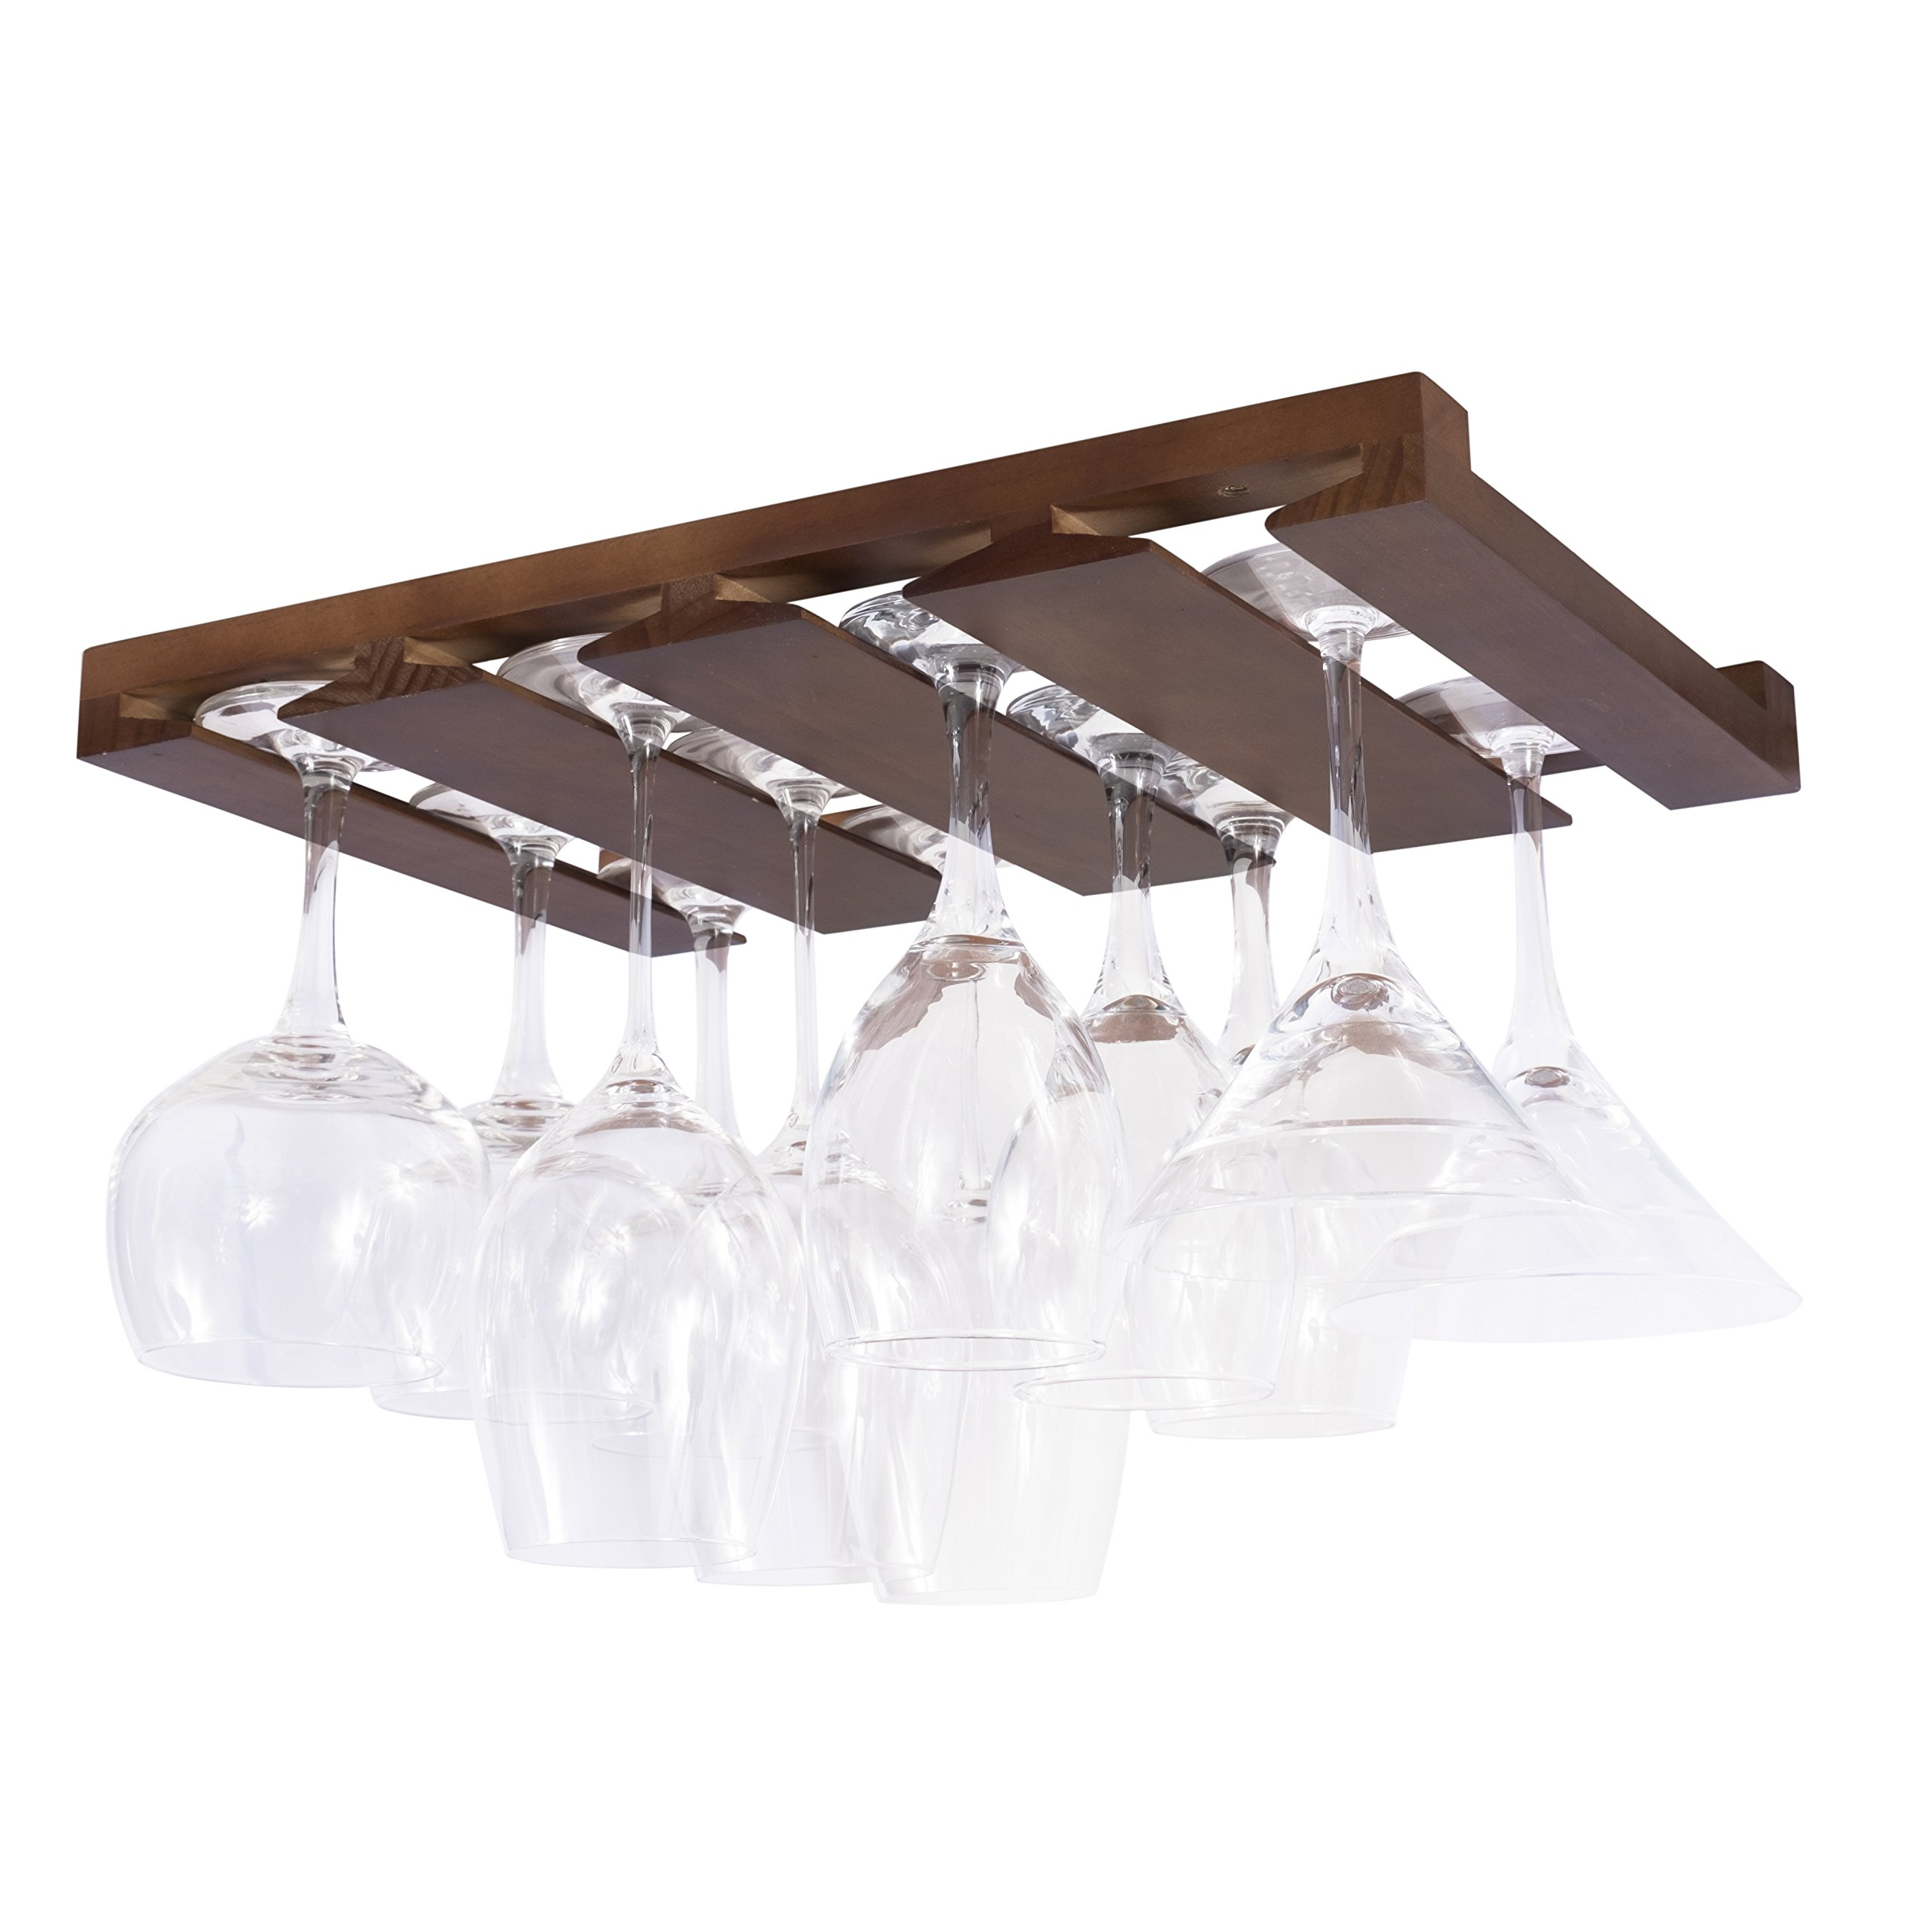 Rustic State 4 Sectional Under Cabinet Wood Stemware Rack 12 Inch Deep (Chestnut) by Rustic State